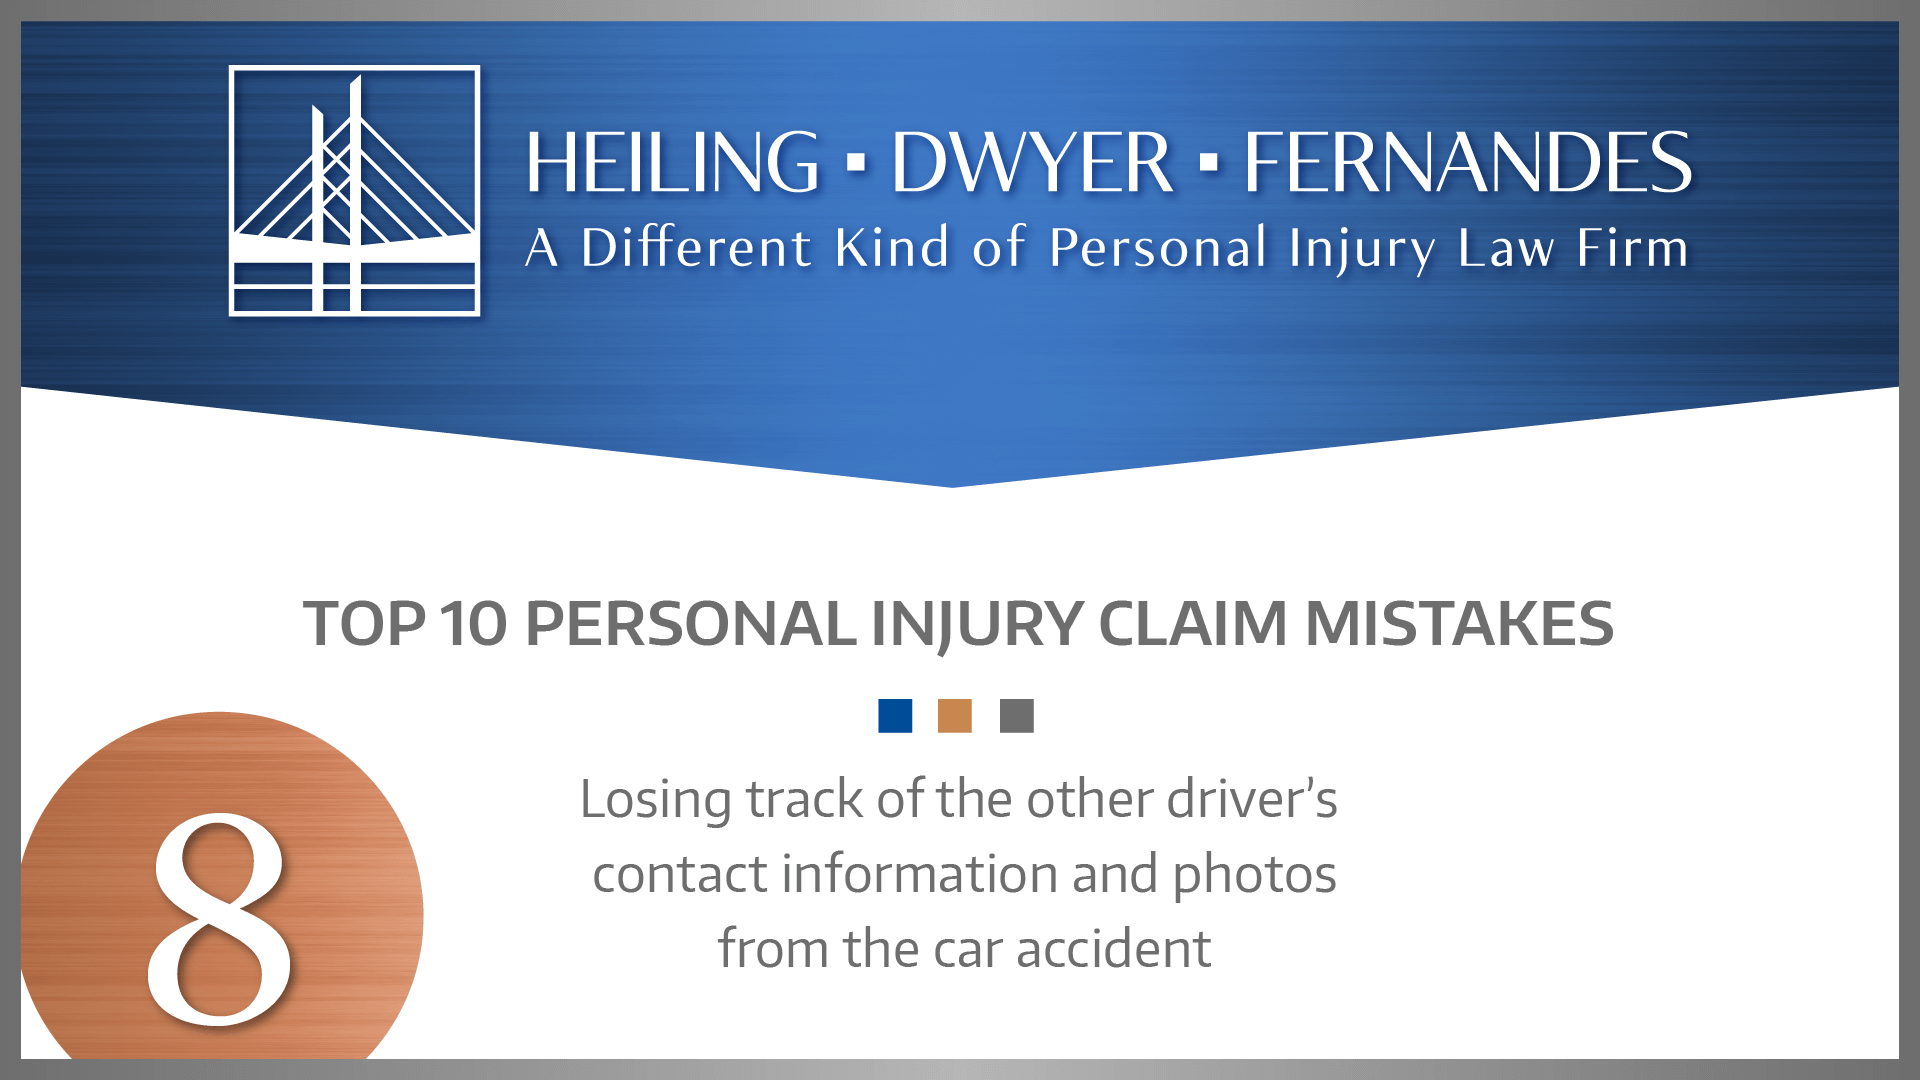 #8 MISTAKE: Losing track of the other driver's contact information and photos from the car accident.